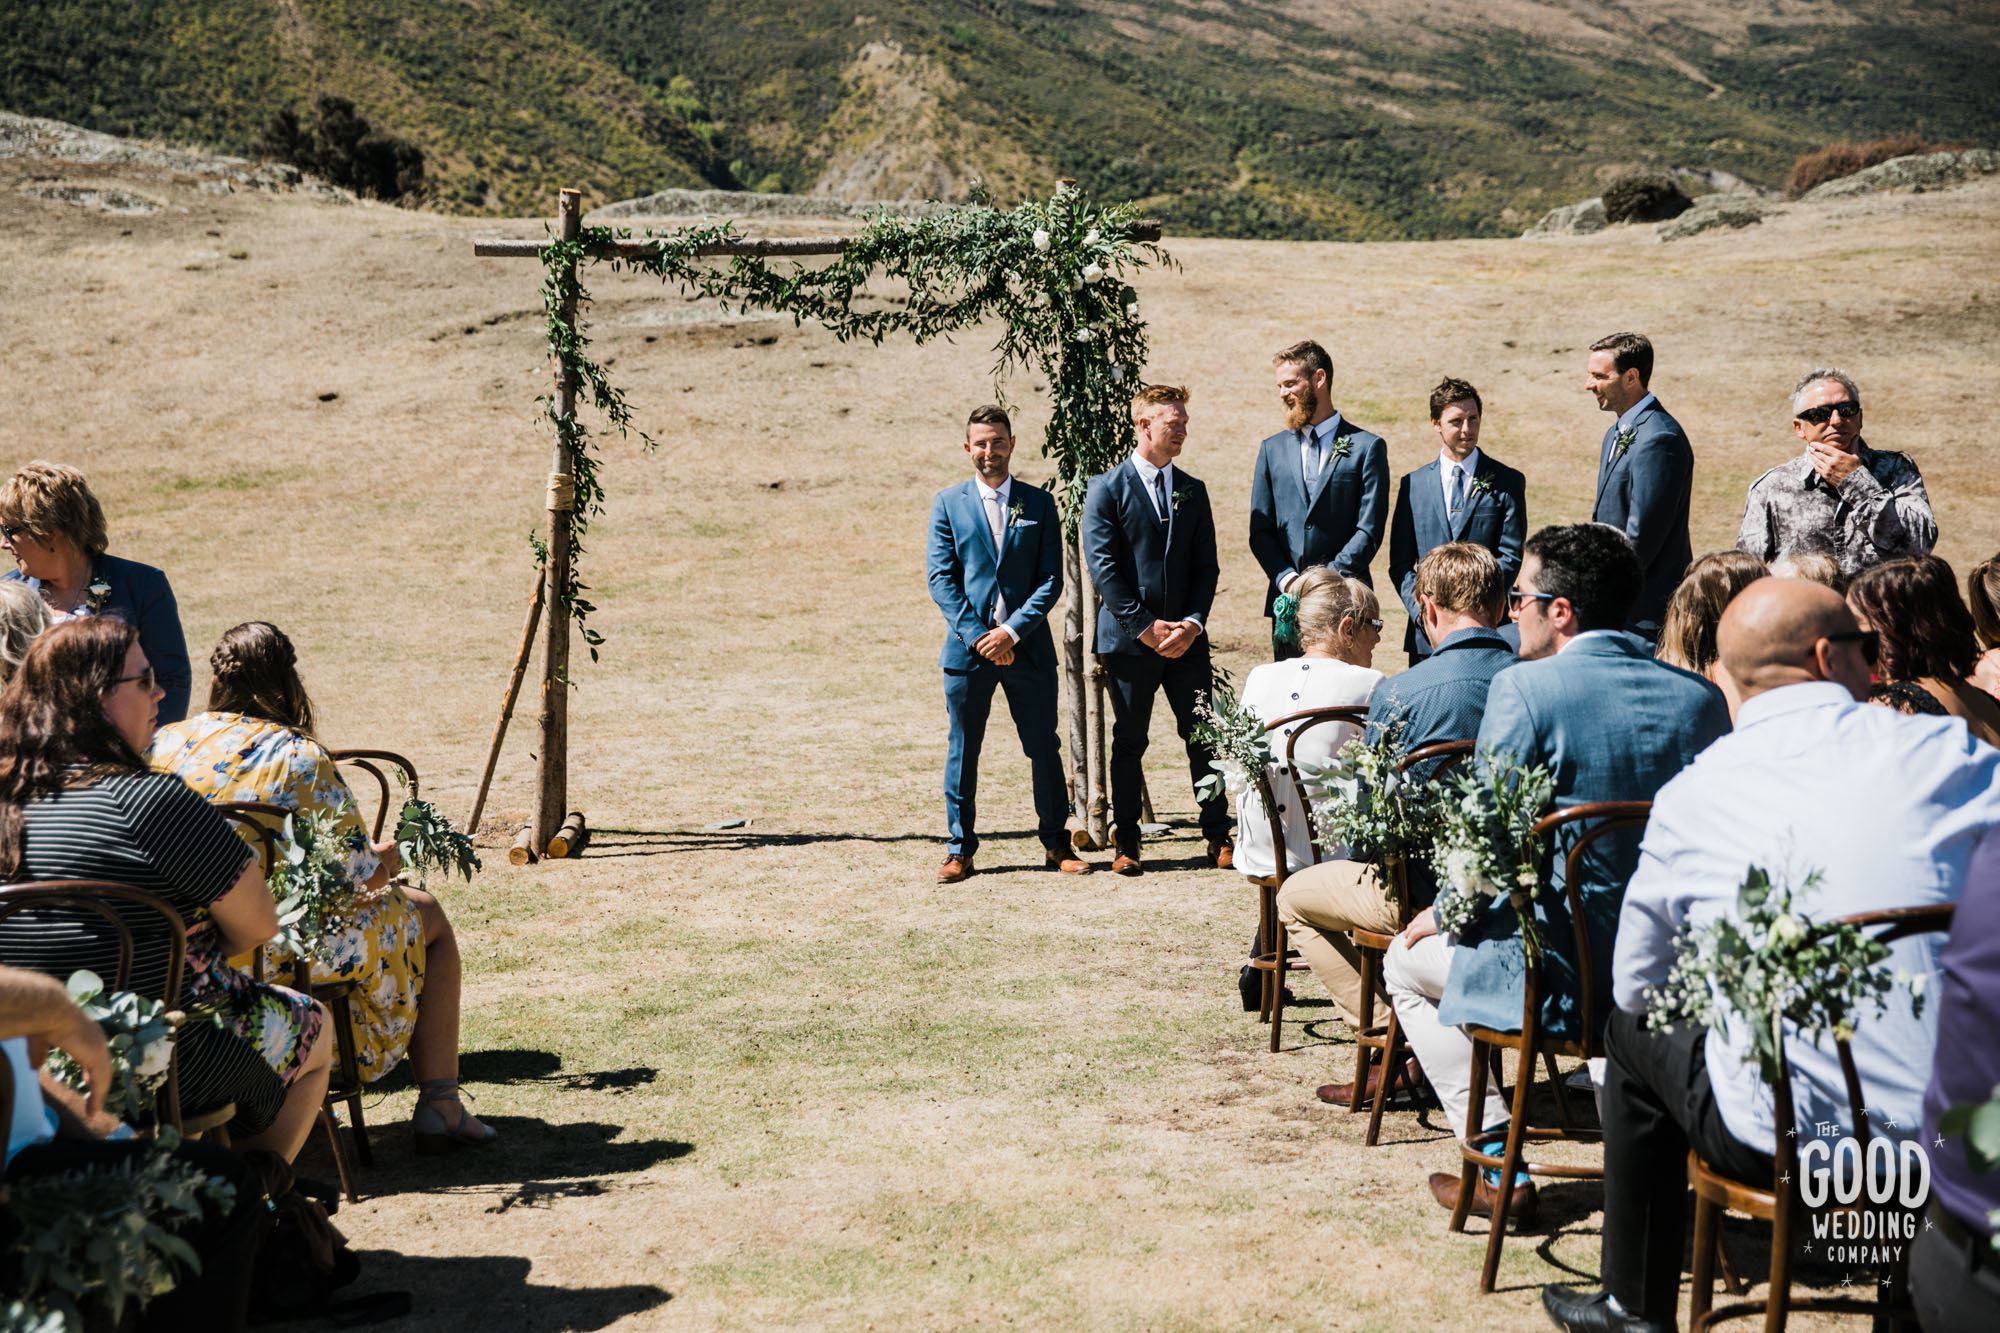 The-Good-Wedding-Company-LaurenLukas-Peregrine-Winery-Wanaka-Photographer-132.jpg